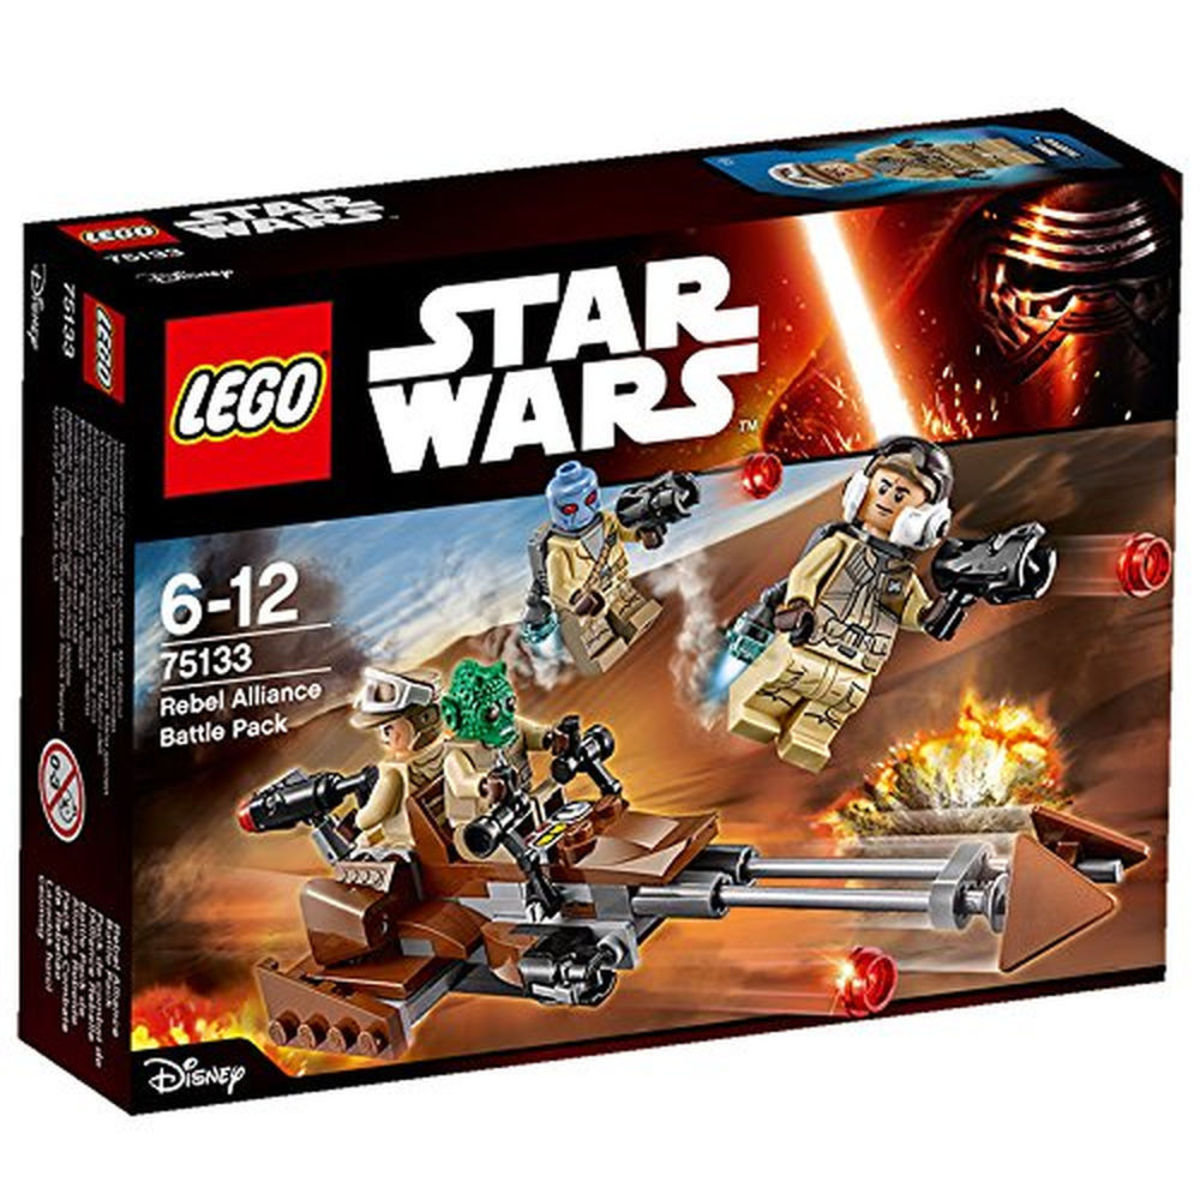 75133 Star Wars™ Rebel Alliance Battle Pack